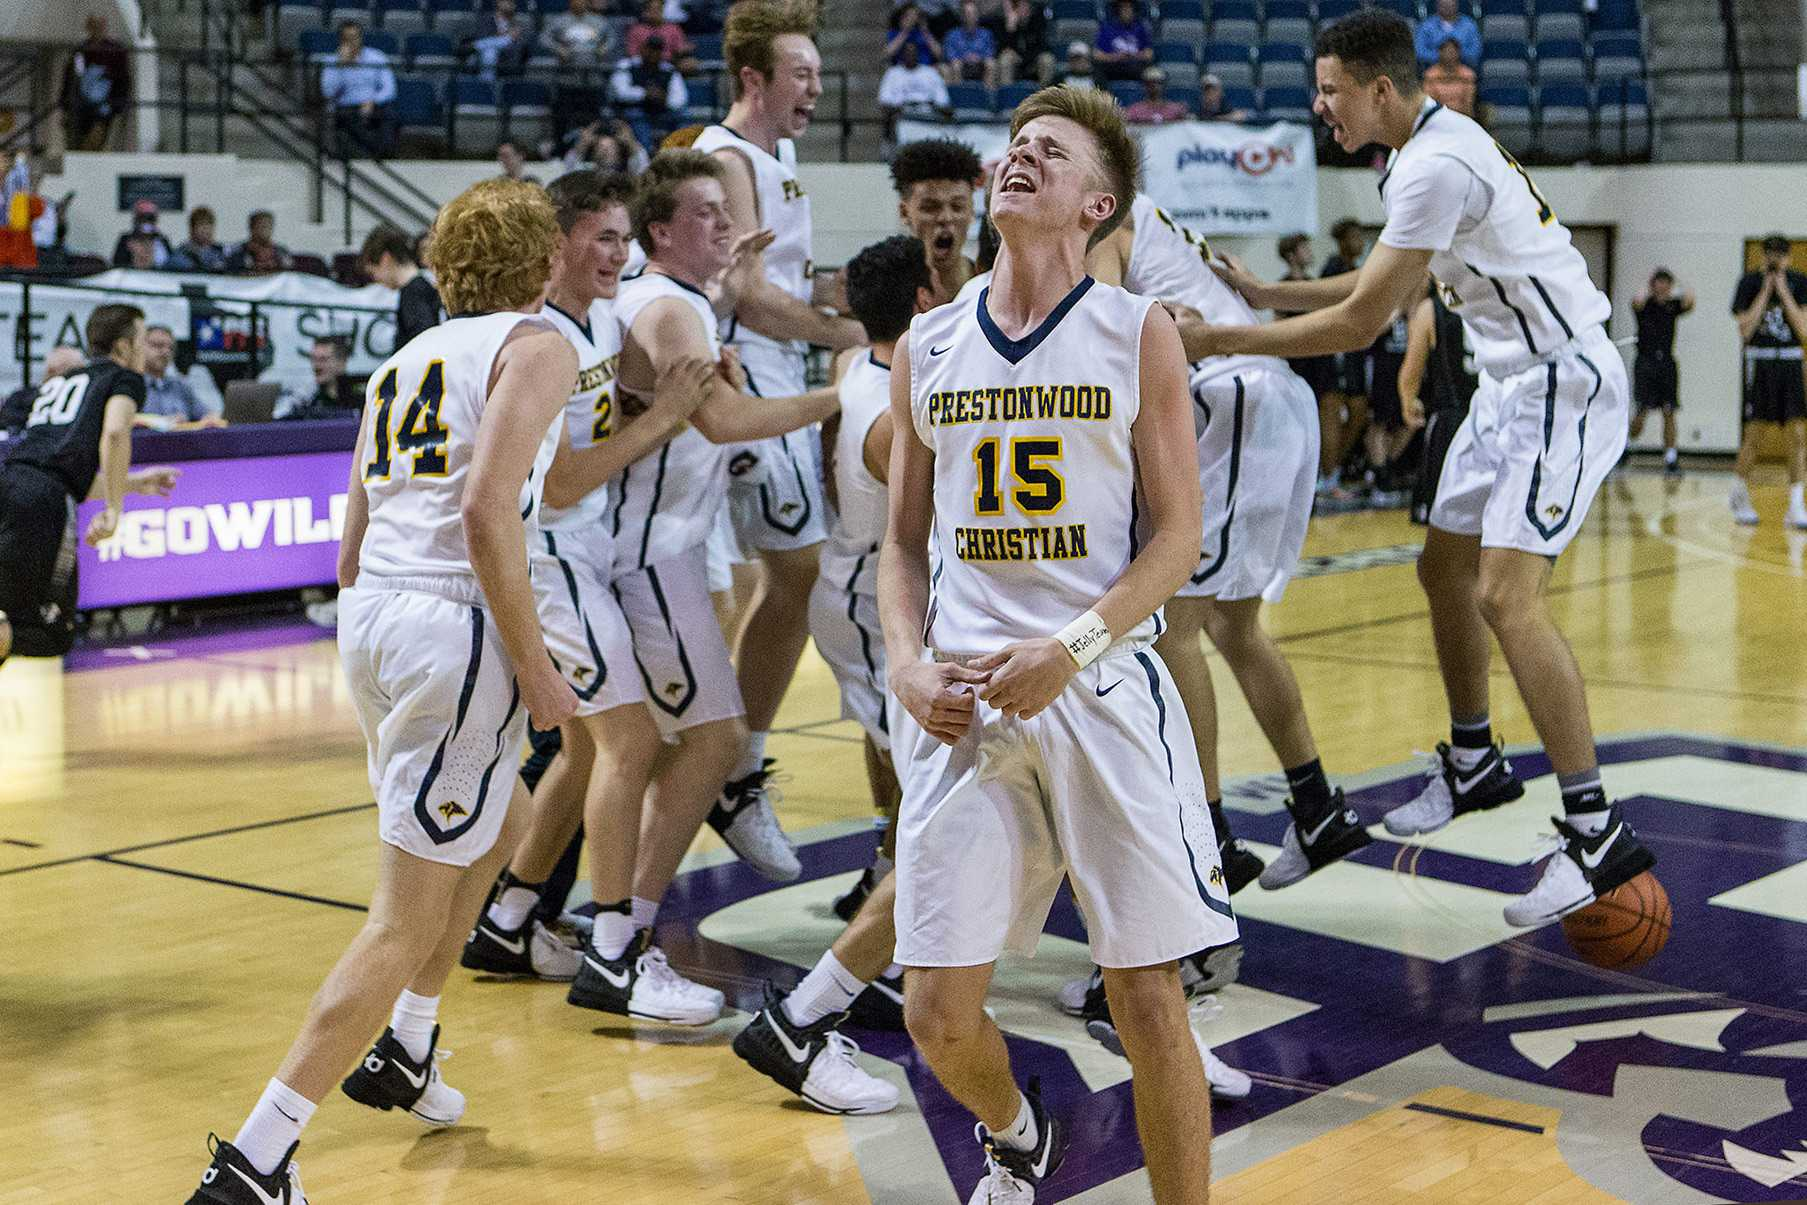 Junior Beck Atkins and the rest of the Varsity Boys Basketball team celebrate mid-court after winning their sixth TAPPS Division 1 State Championship in a row. The team defeated district rival Bishop Lynch, 45-42.